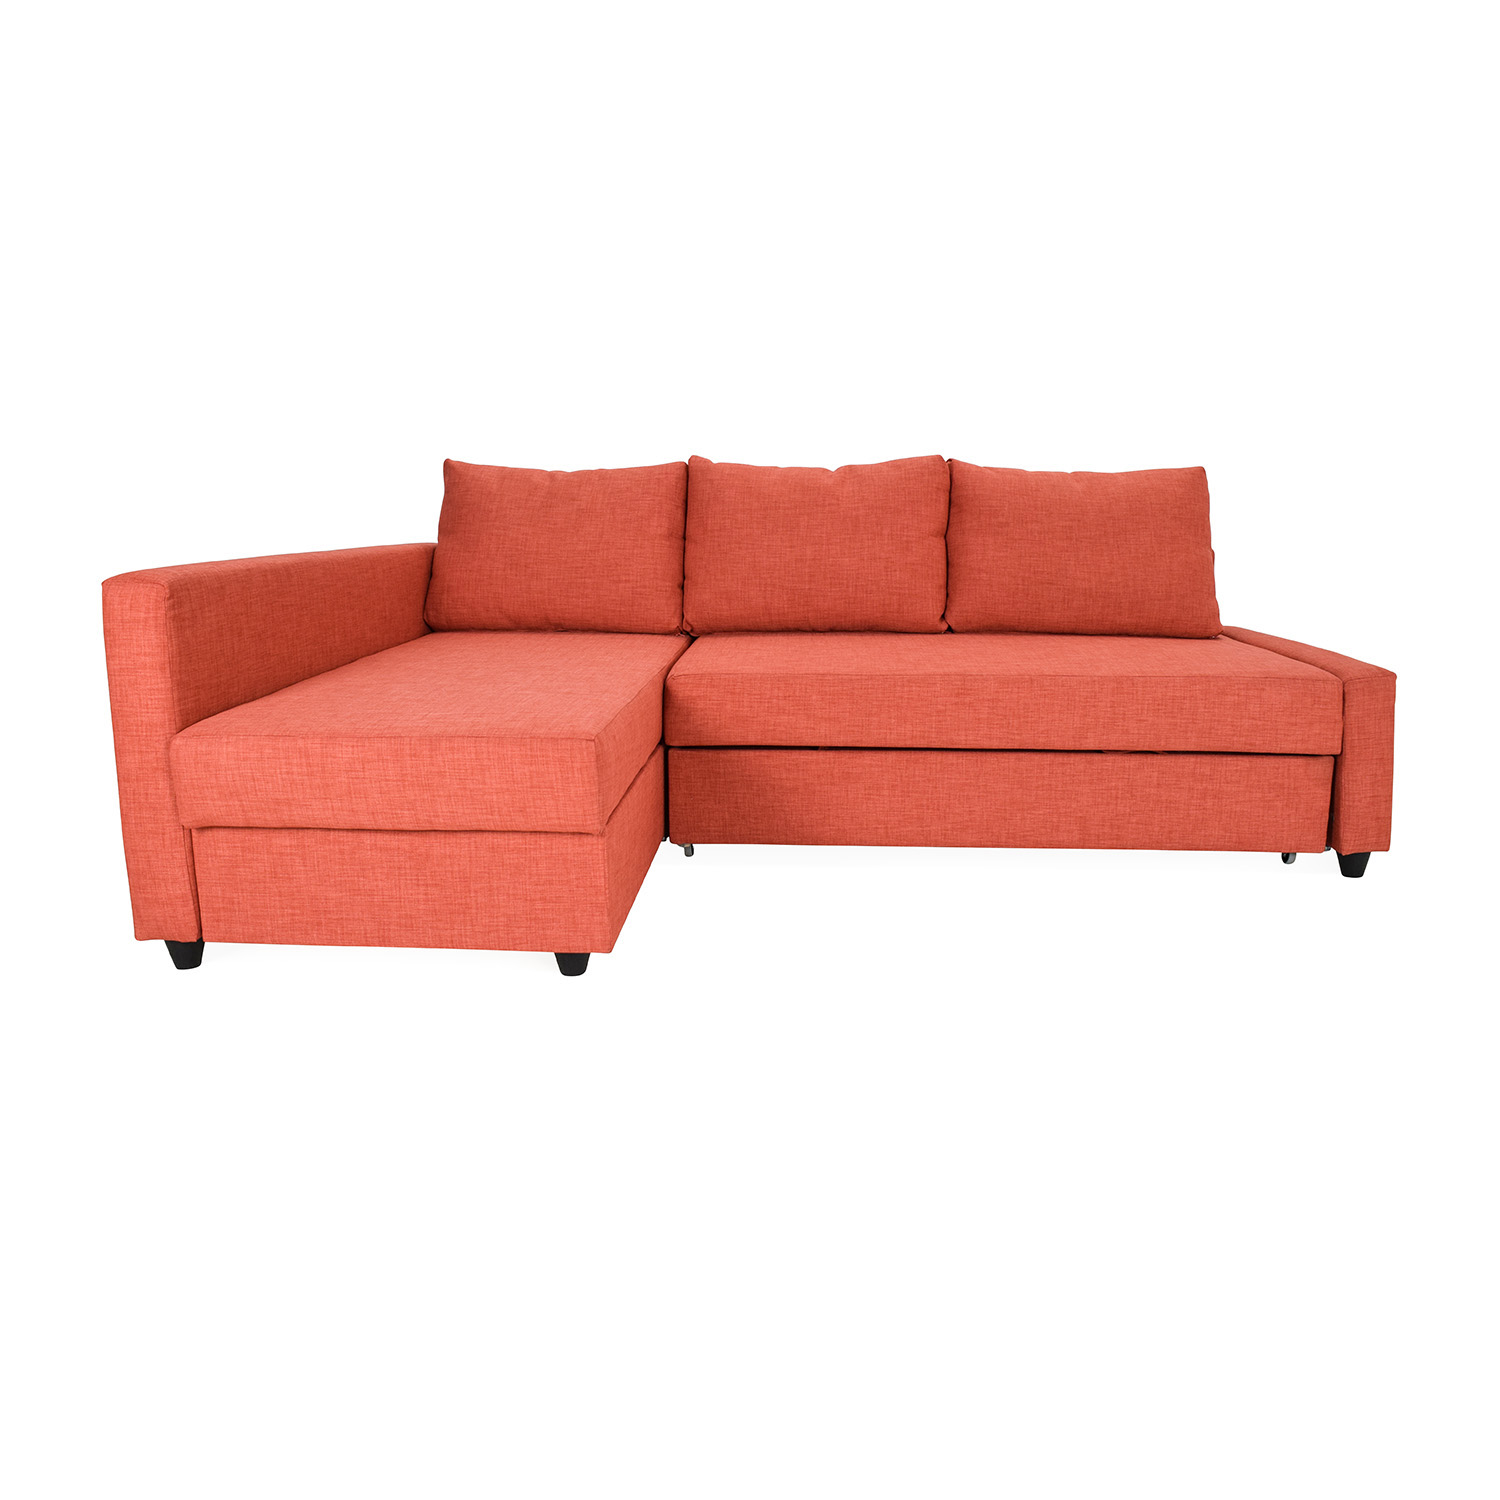 Buy FRIHETEN Sofa Bed With Chaise IKEA Sofas ...